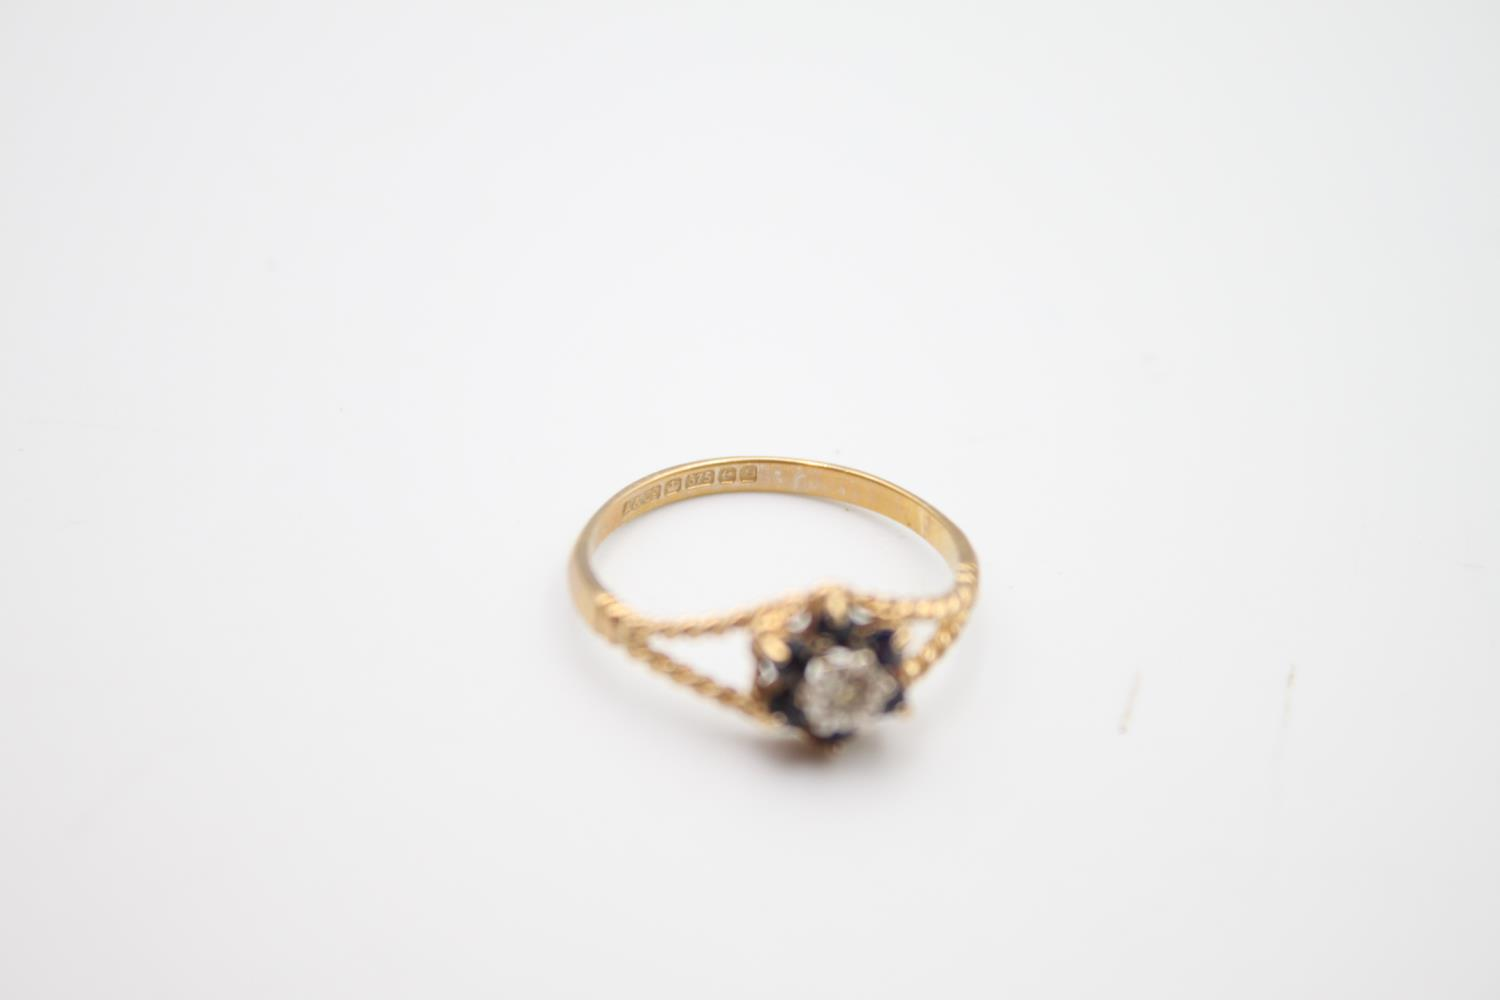 2 x 9ct gold diamond & sapphire rings inc cluster 3.6g Size K on left & O on right - Image 5 of 5